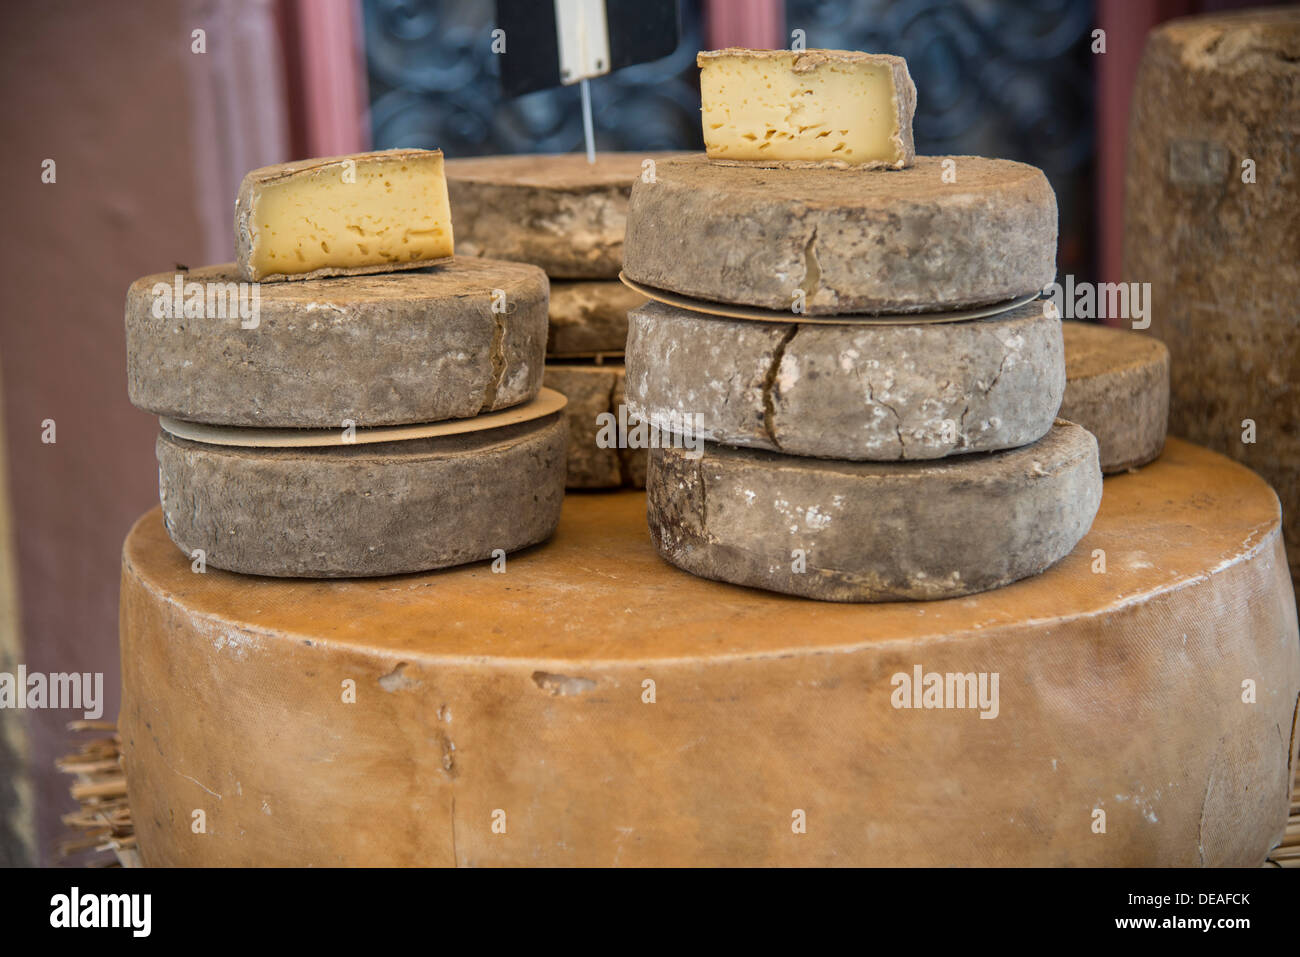 Cheeses for sale on a market, Ribeauville, Département Bas-Rhin, Alsace, France - Stock Image